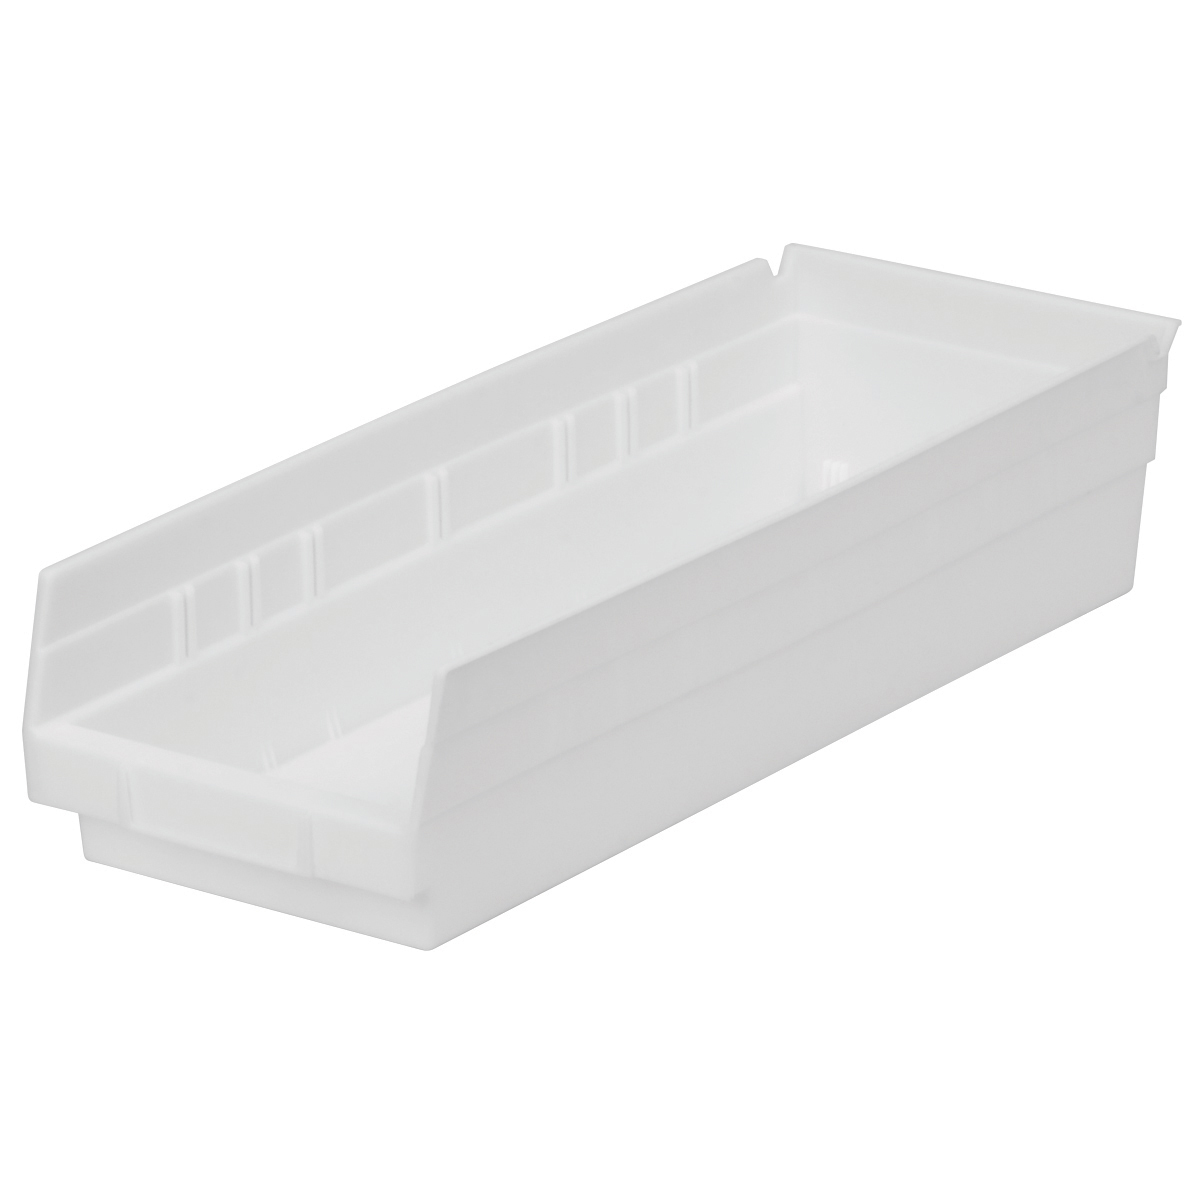 Shelf Bin 17-7/8 x 6-5/8 x 4, White (30138WHITE).  This item sold in carton quantities of 12.